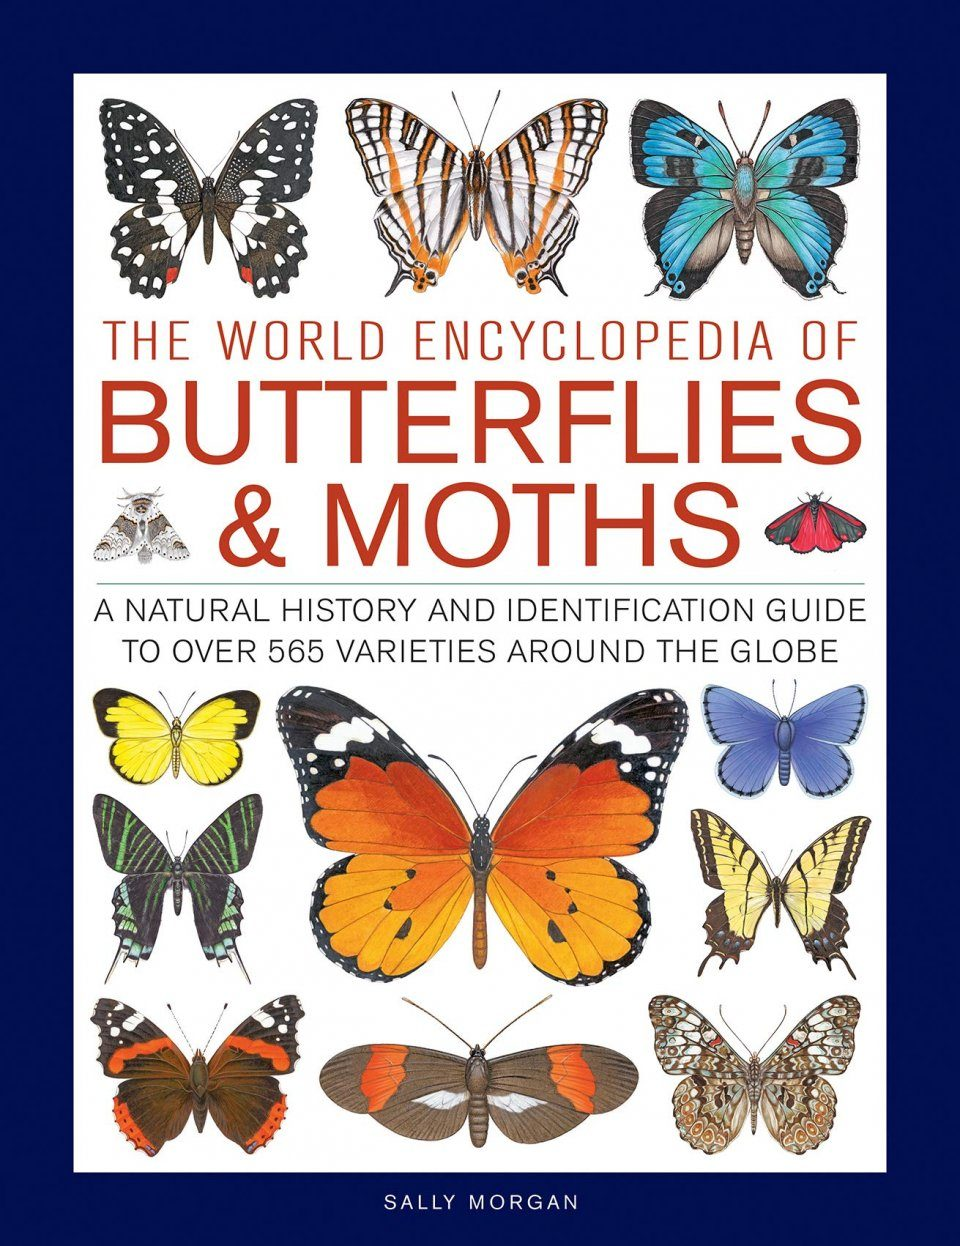 The World Encyclopedia of Butterflies & Moths